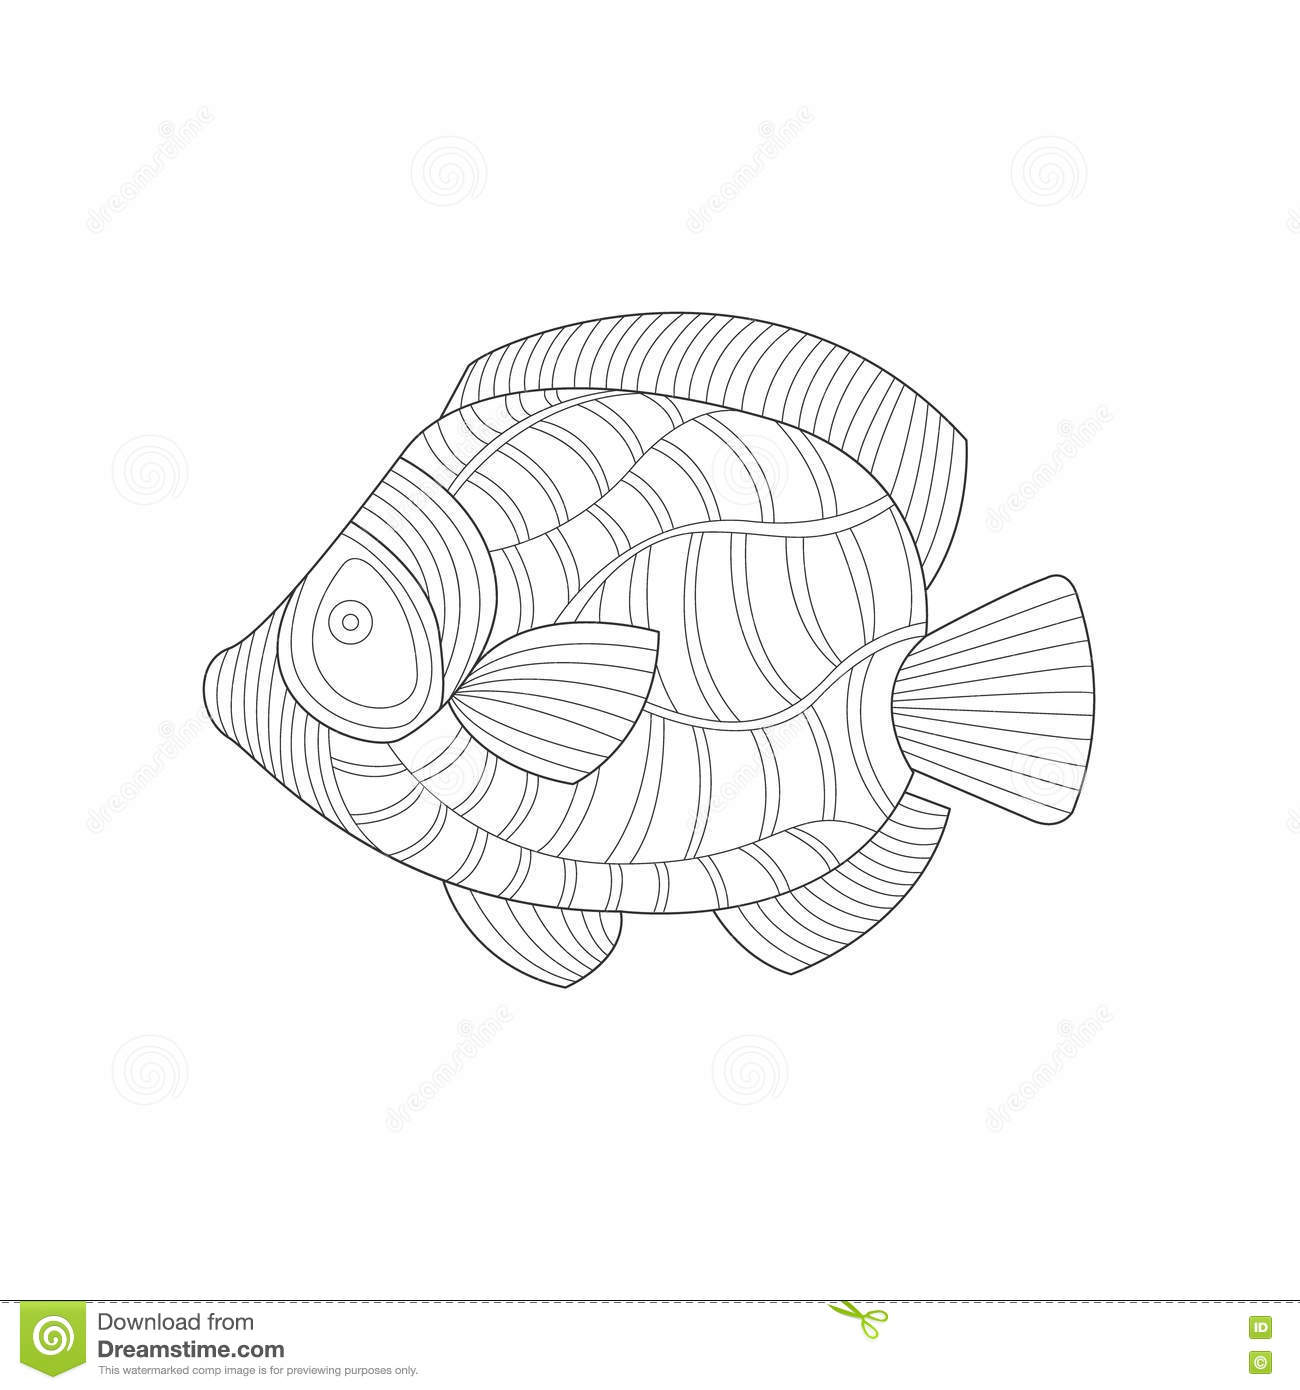 Download Angel Fish Sea Underwater Nature Adult Black And White Zentangle Coloring Book Illustration Stock Vector